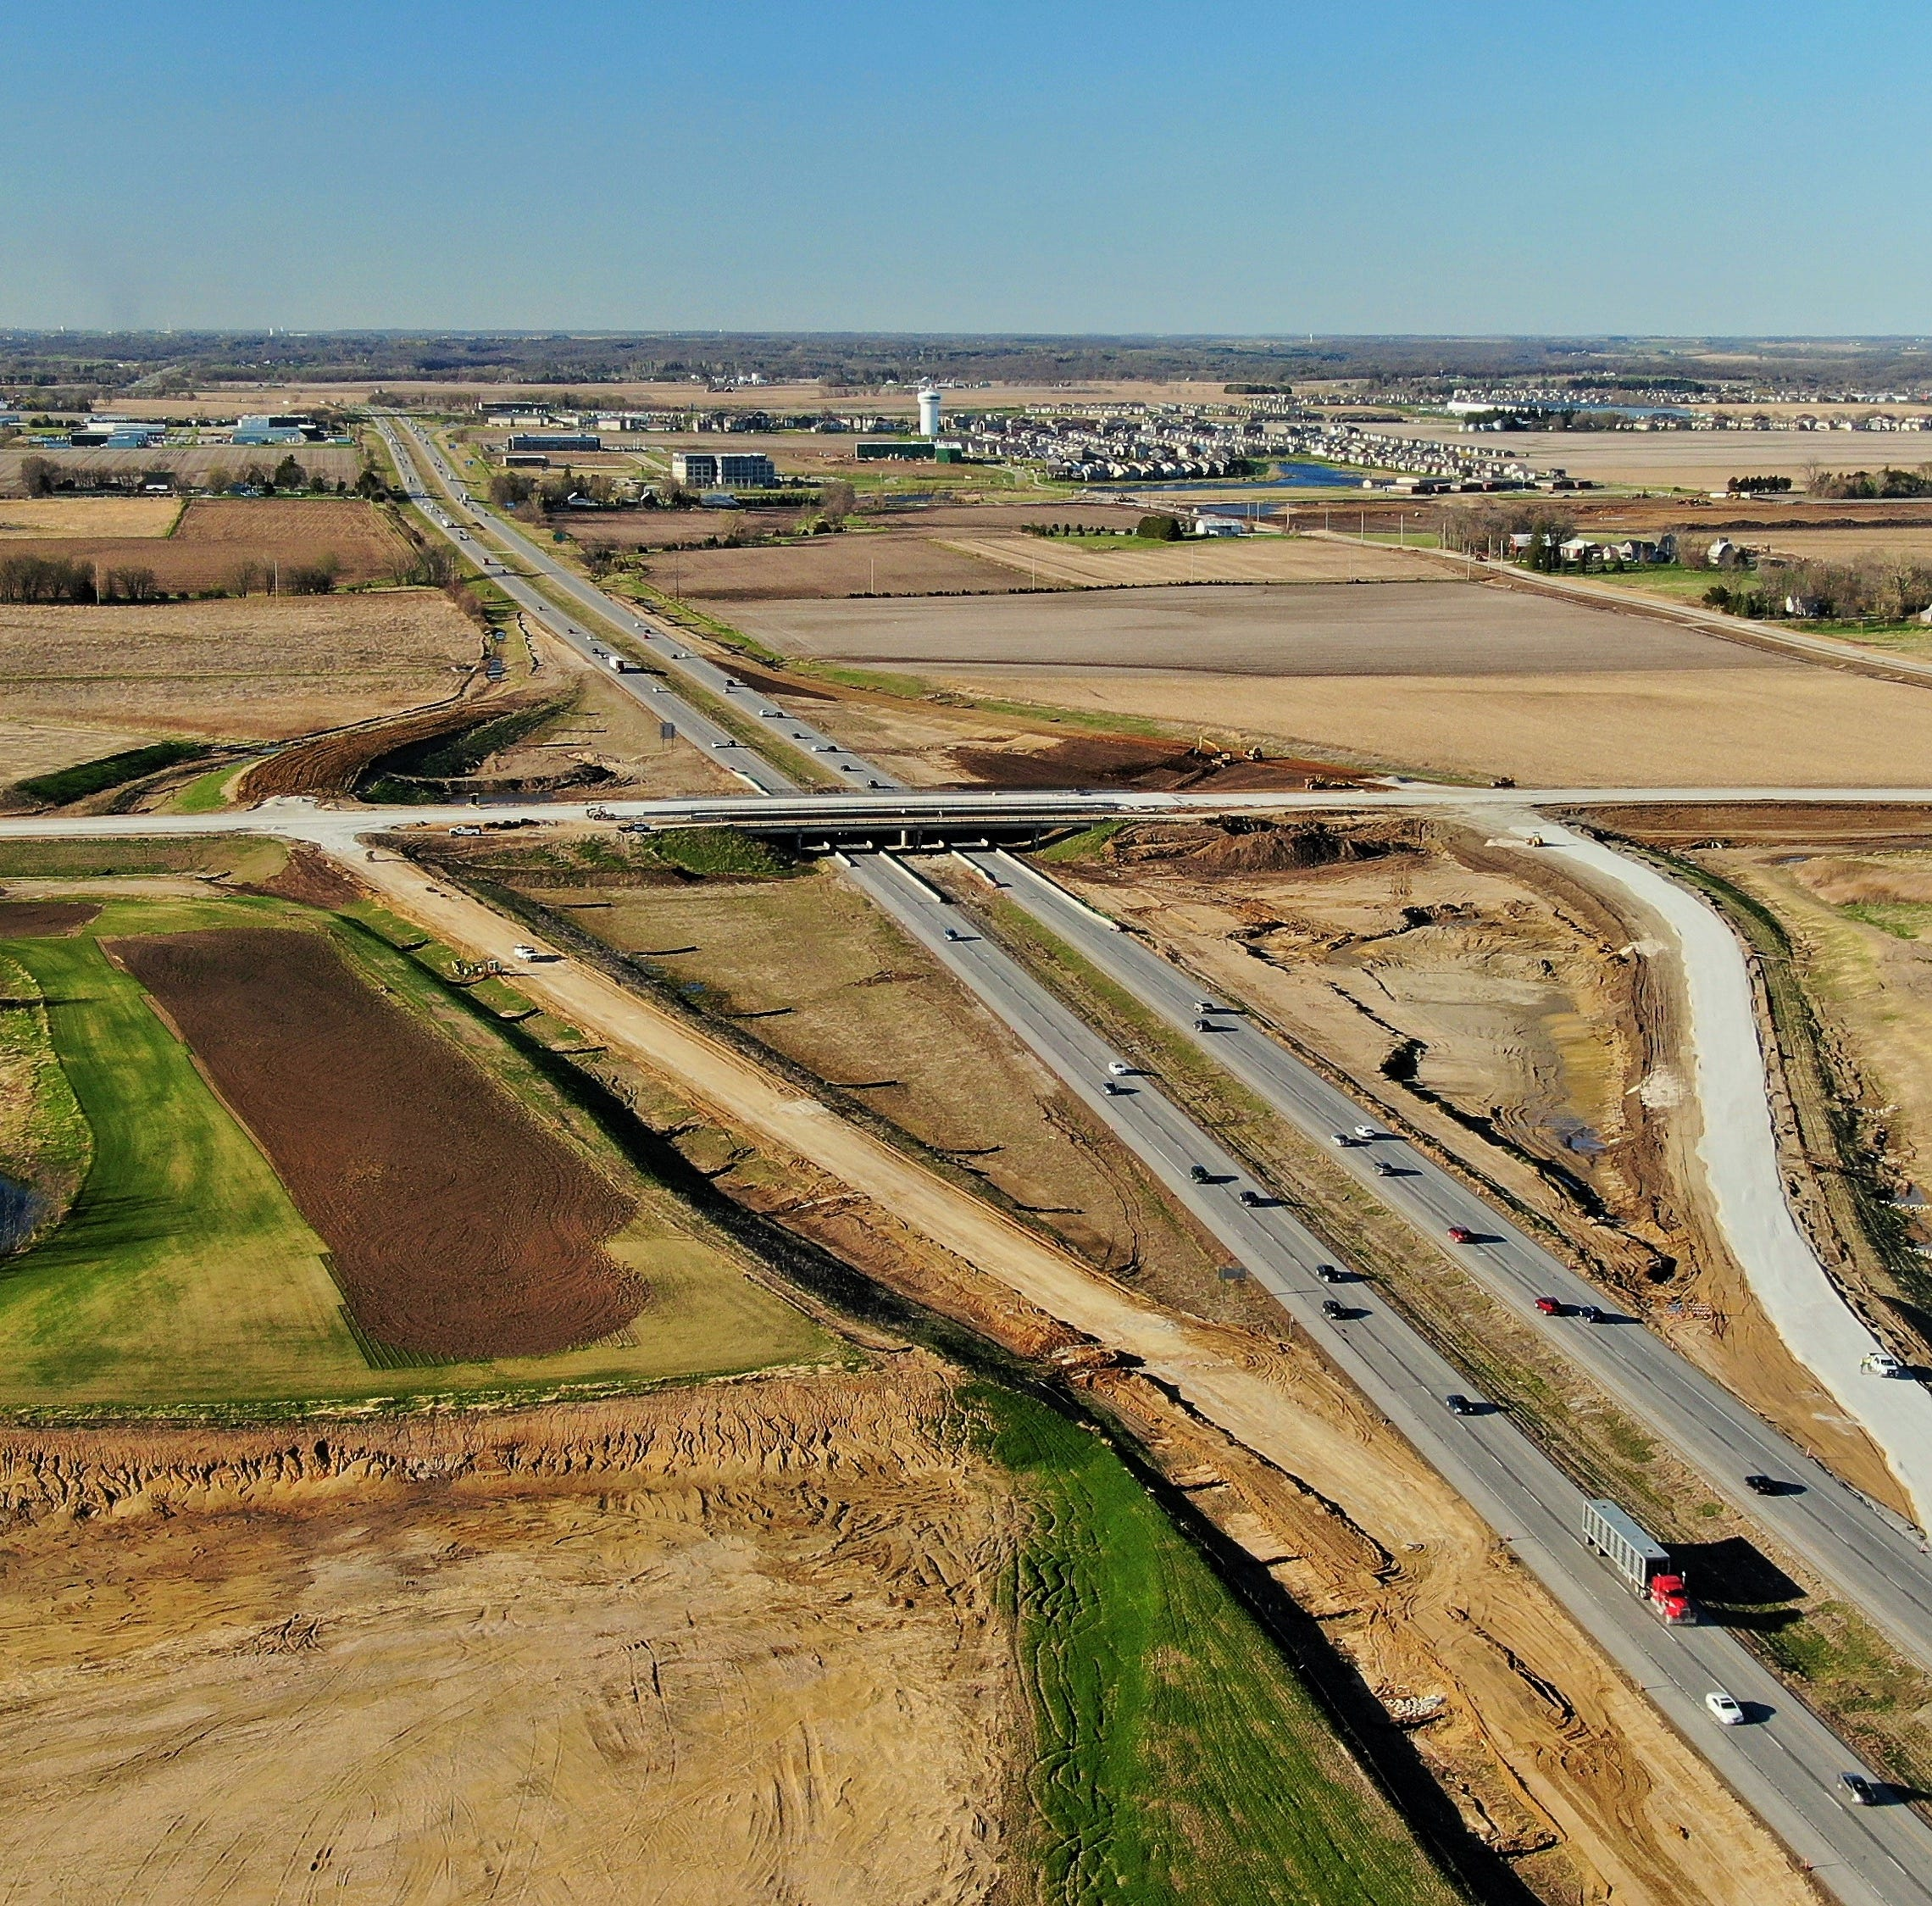 New I-380 exit at North Liberty prompts development interest